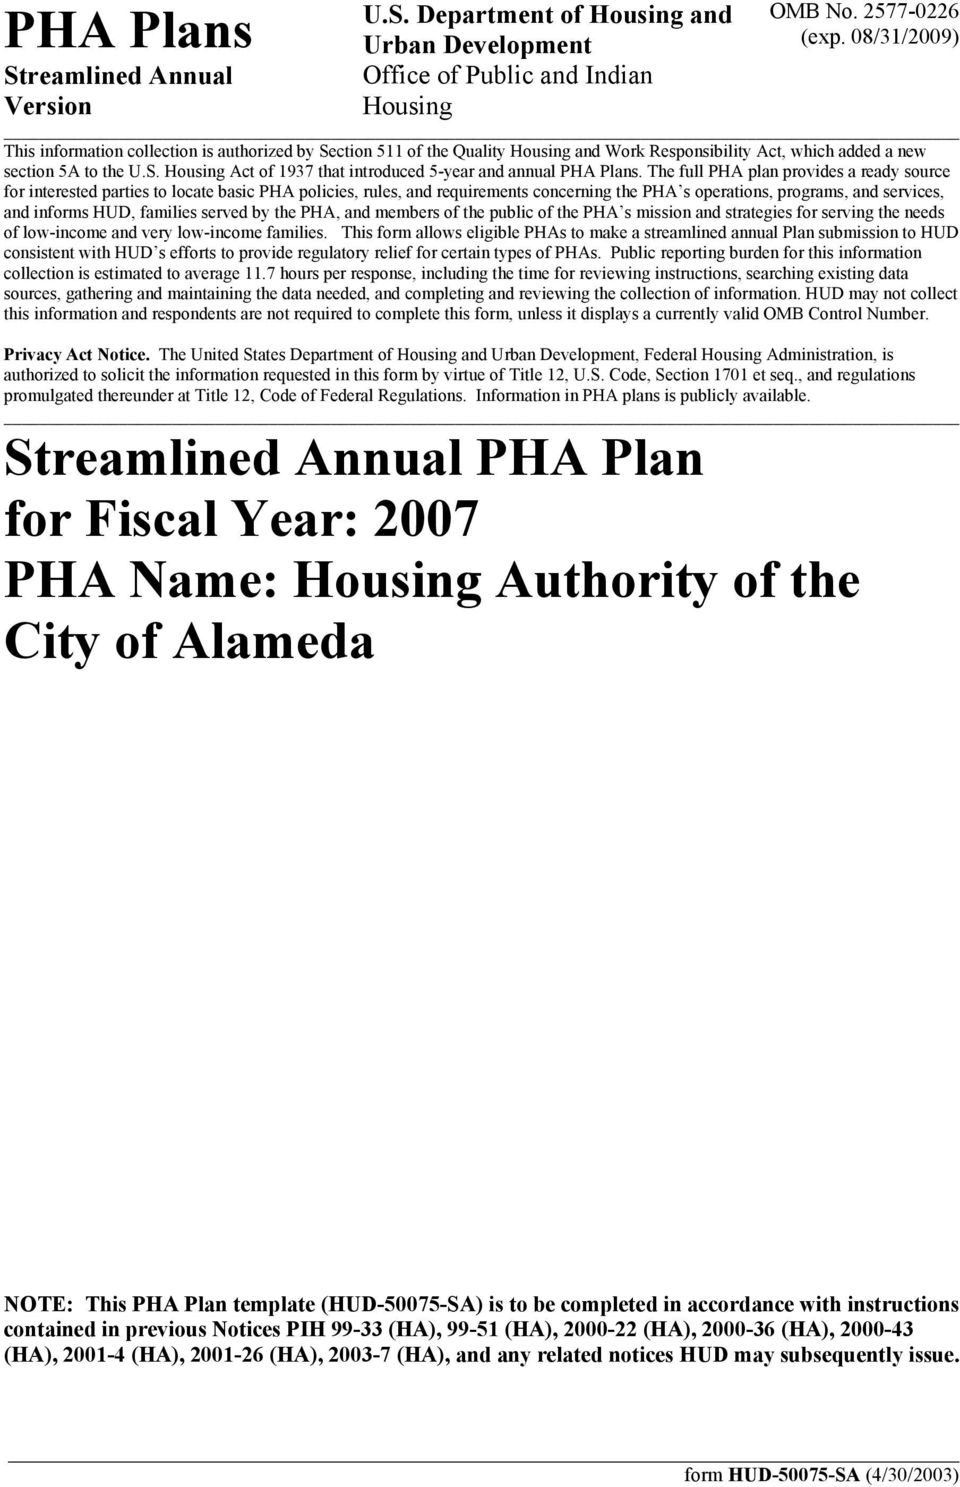 The full PHA plan provides a ready source for interested parties to locate basic PHA policies, rules, and requirements concerning the PHA s operations, programs, and services, and informs HUD,